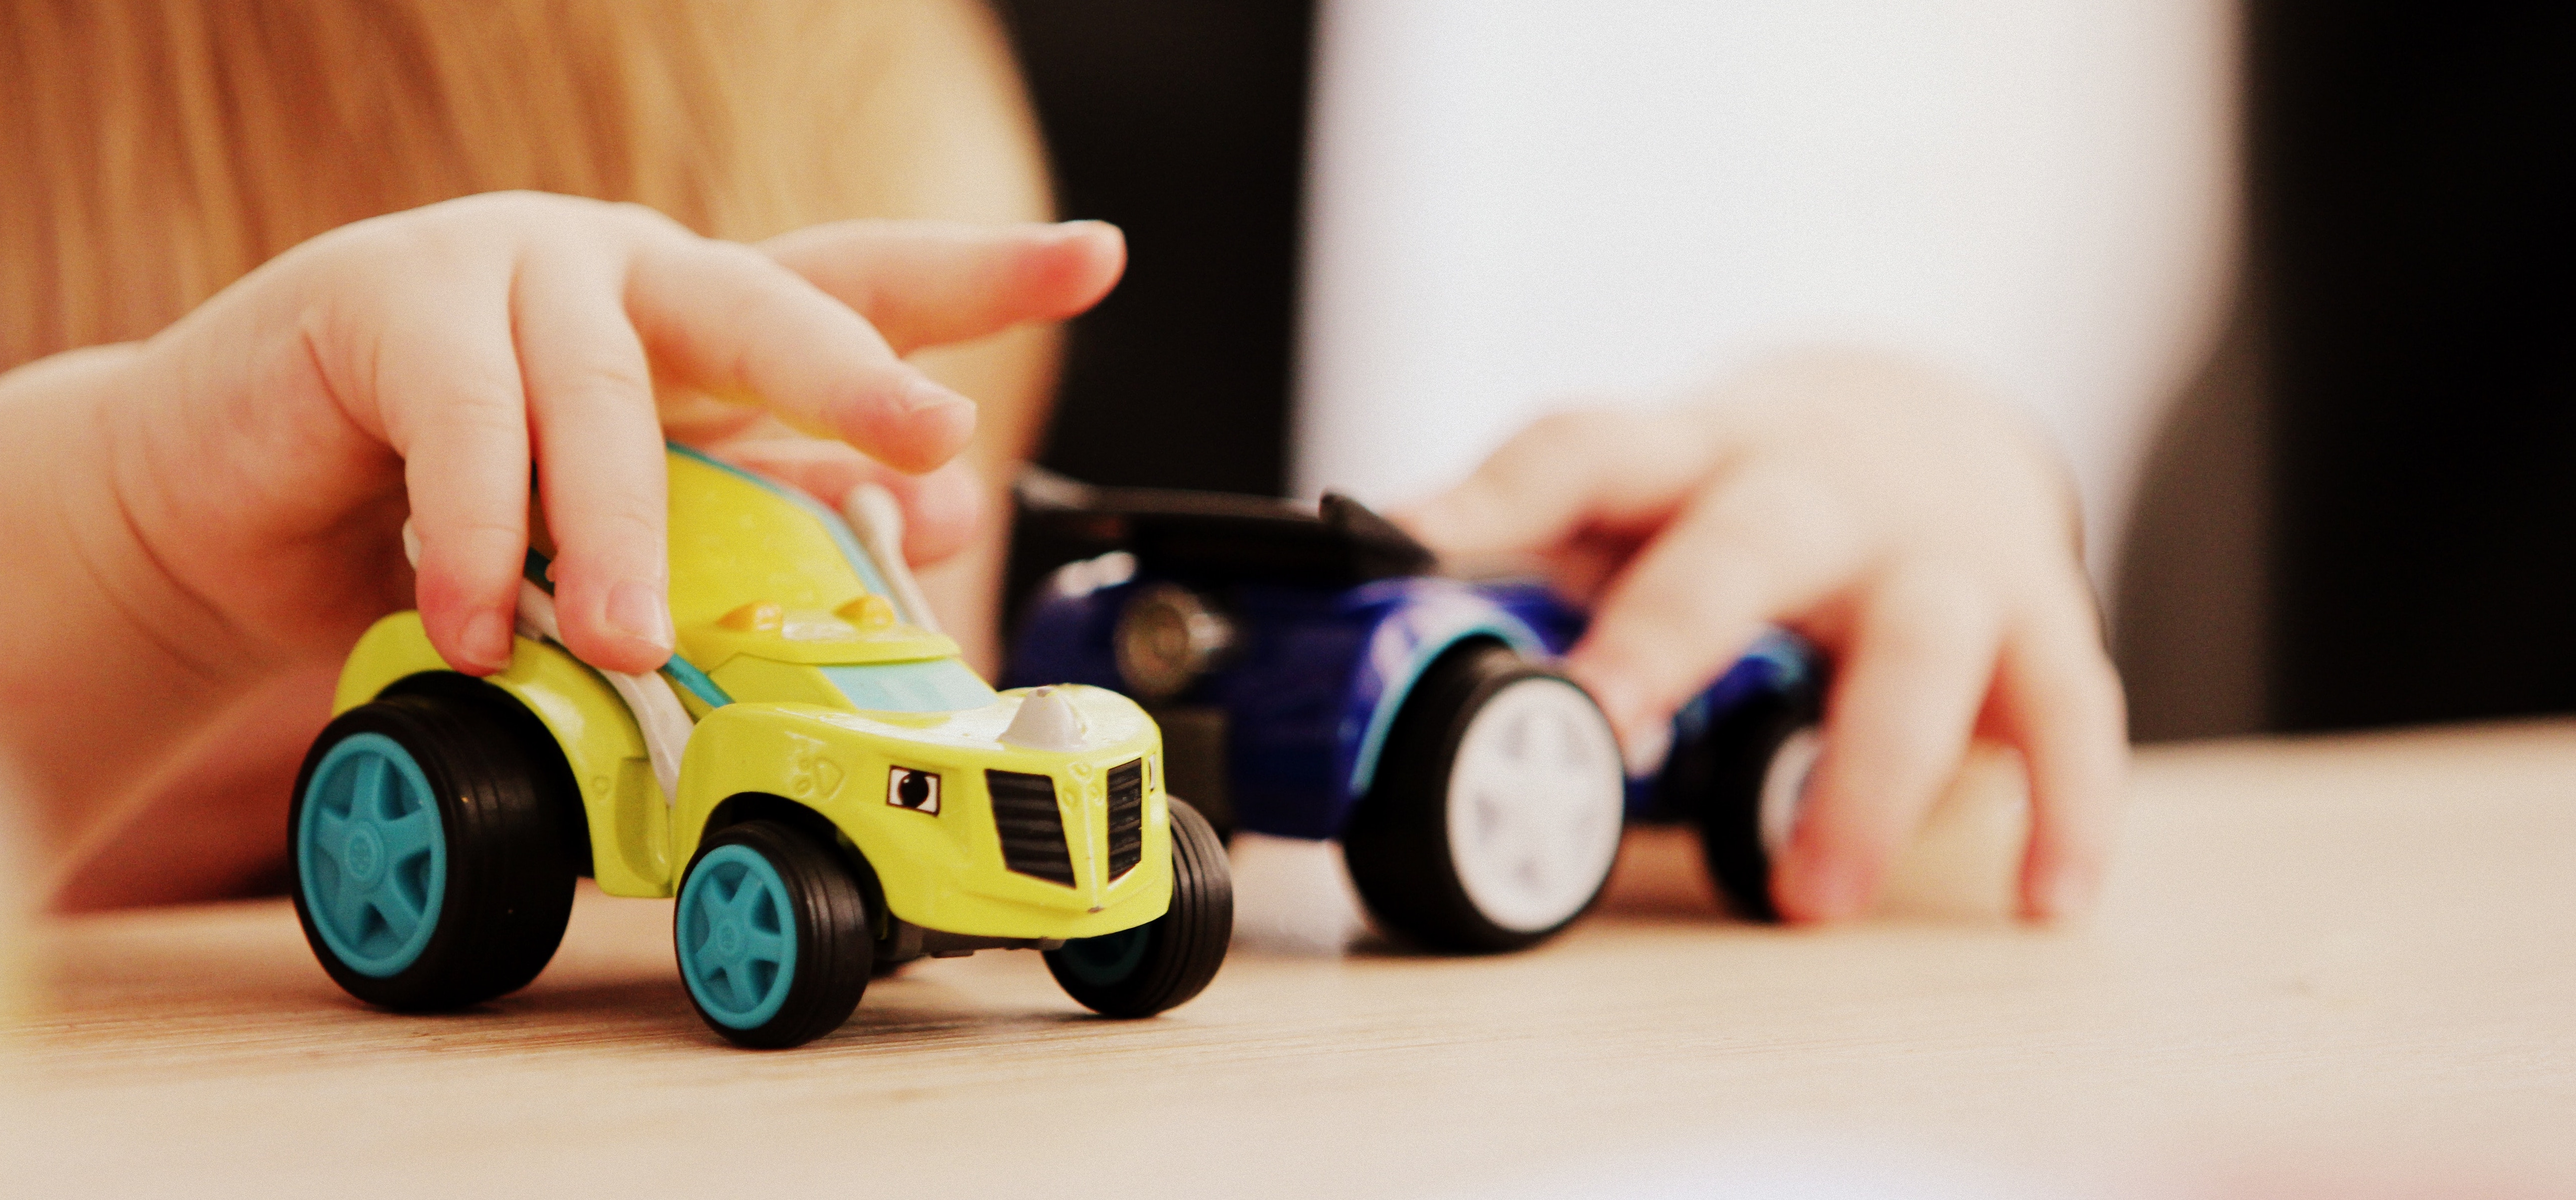 Mindful Play Therapy with cars